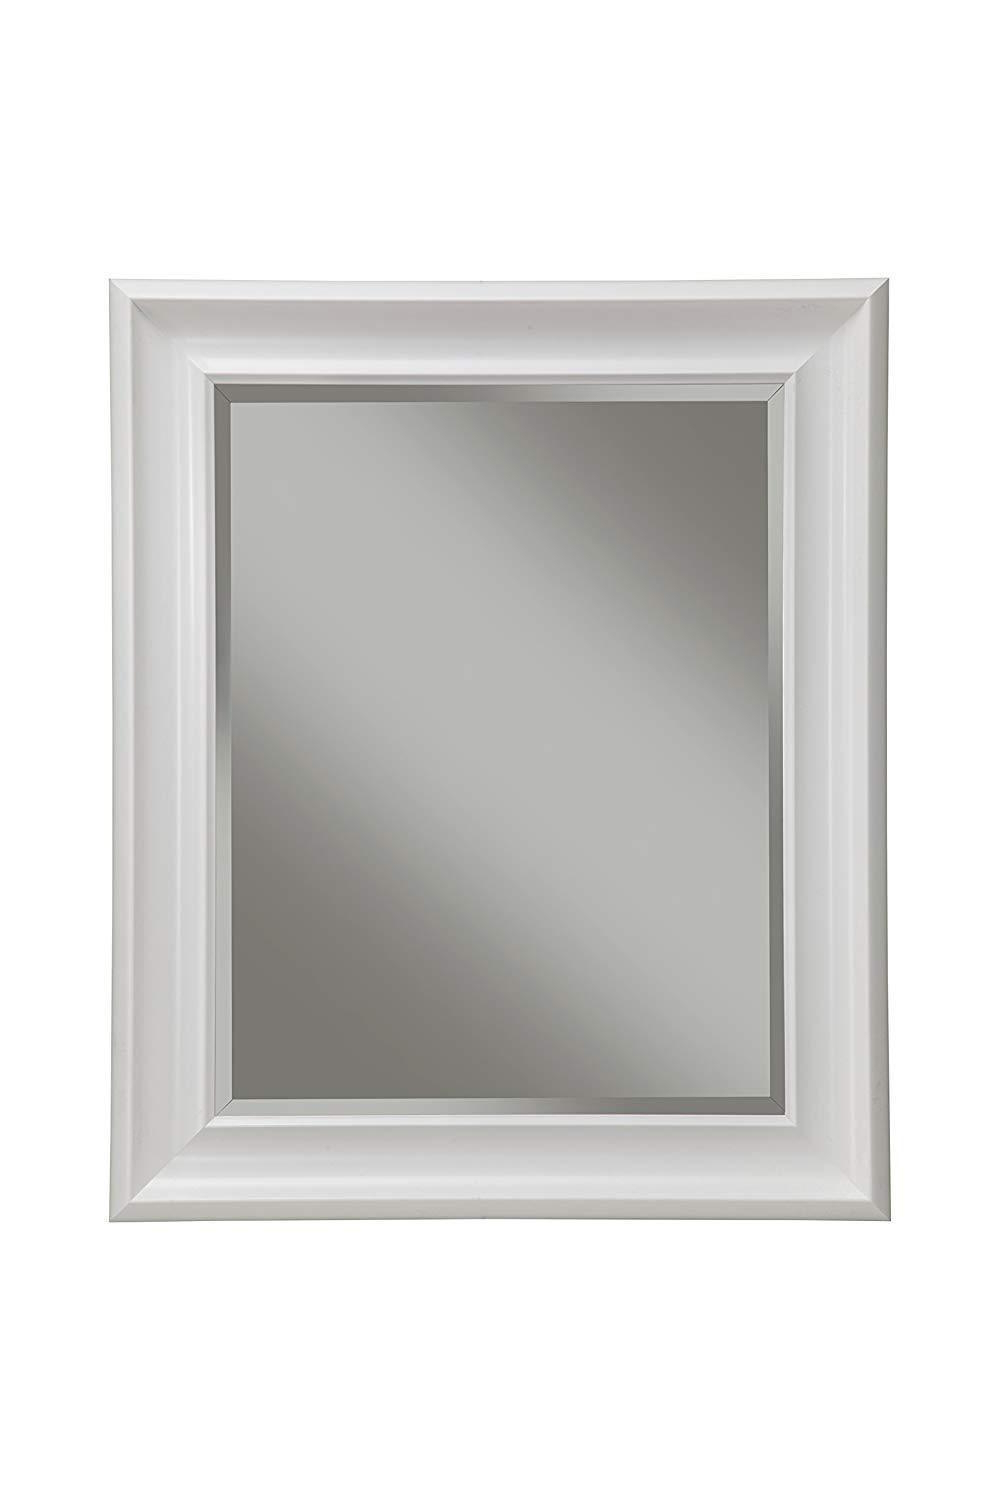 Widely Used Polystyrene Framed Wall Mirror With Beveled Glass, White (View 9 of 20)